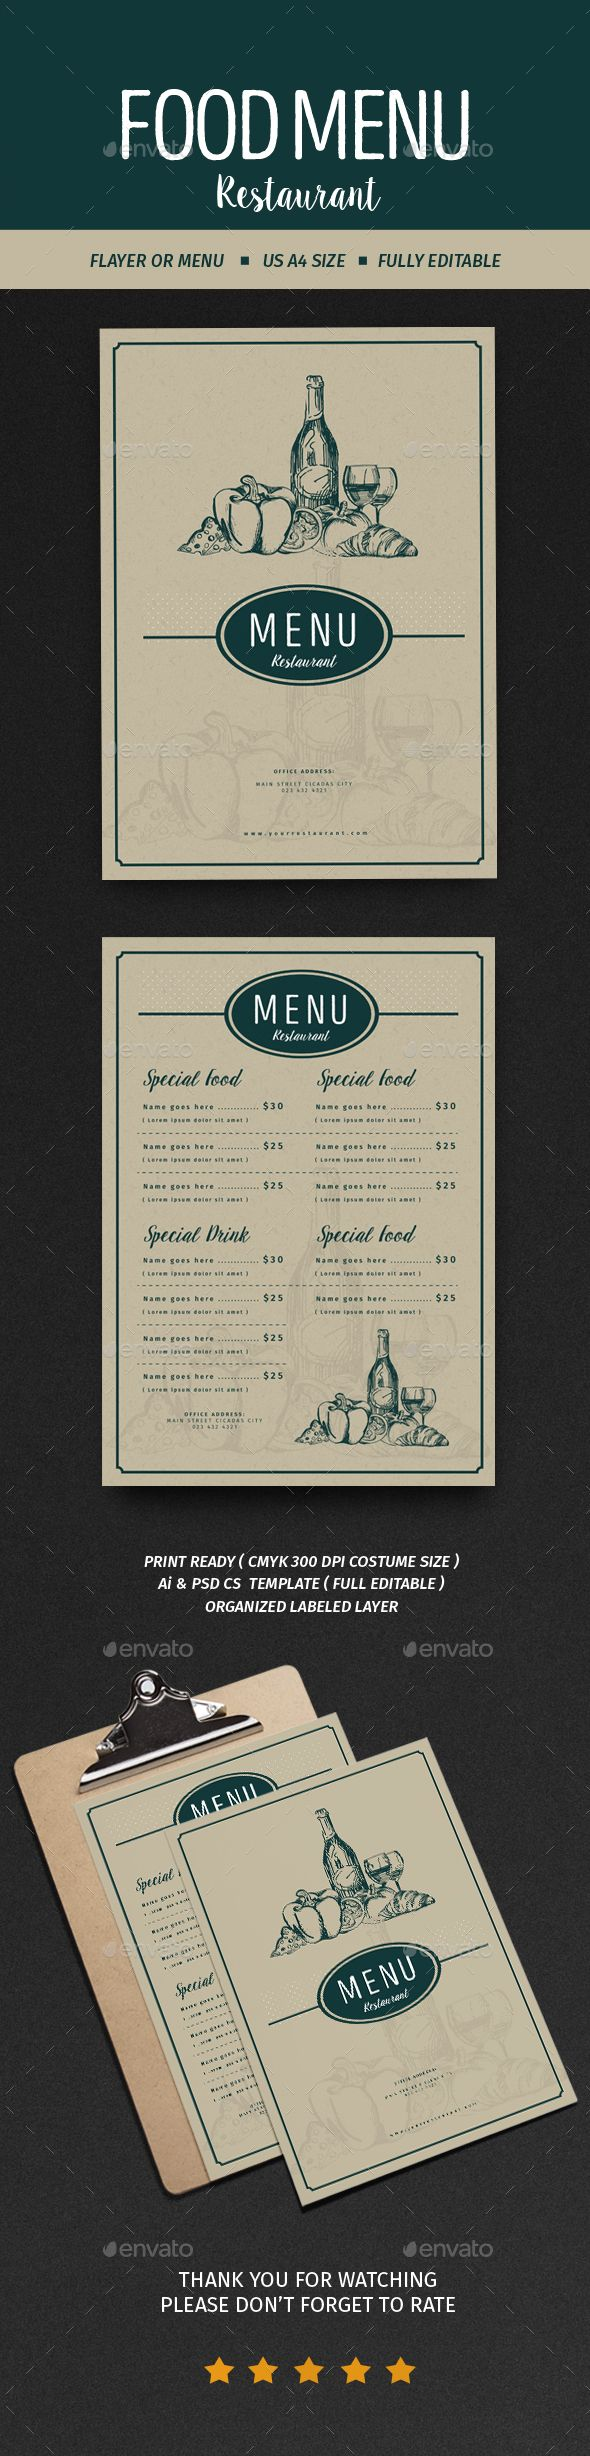 Vintage Menu Restaurant  PSD Template • Download ➝ https://graphicriver.net/item/vintage-menu-restaurant/17058322?ref=pxcr